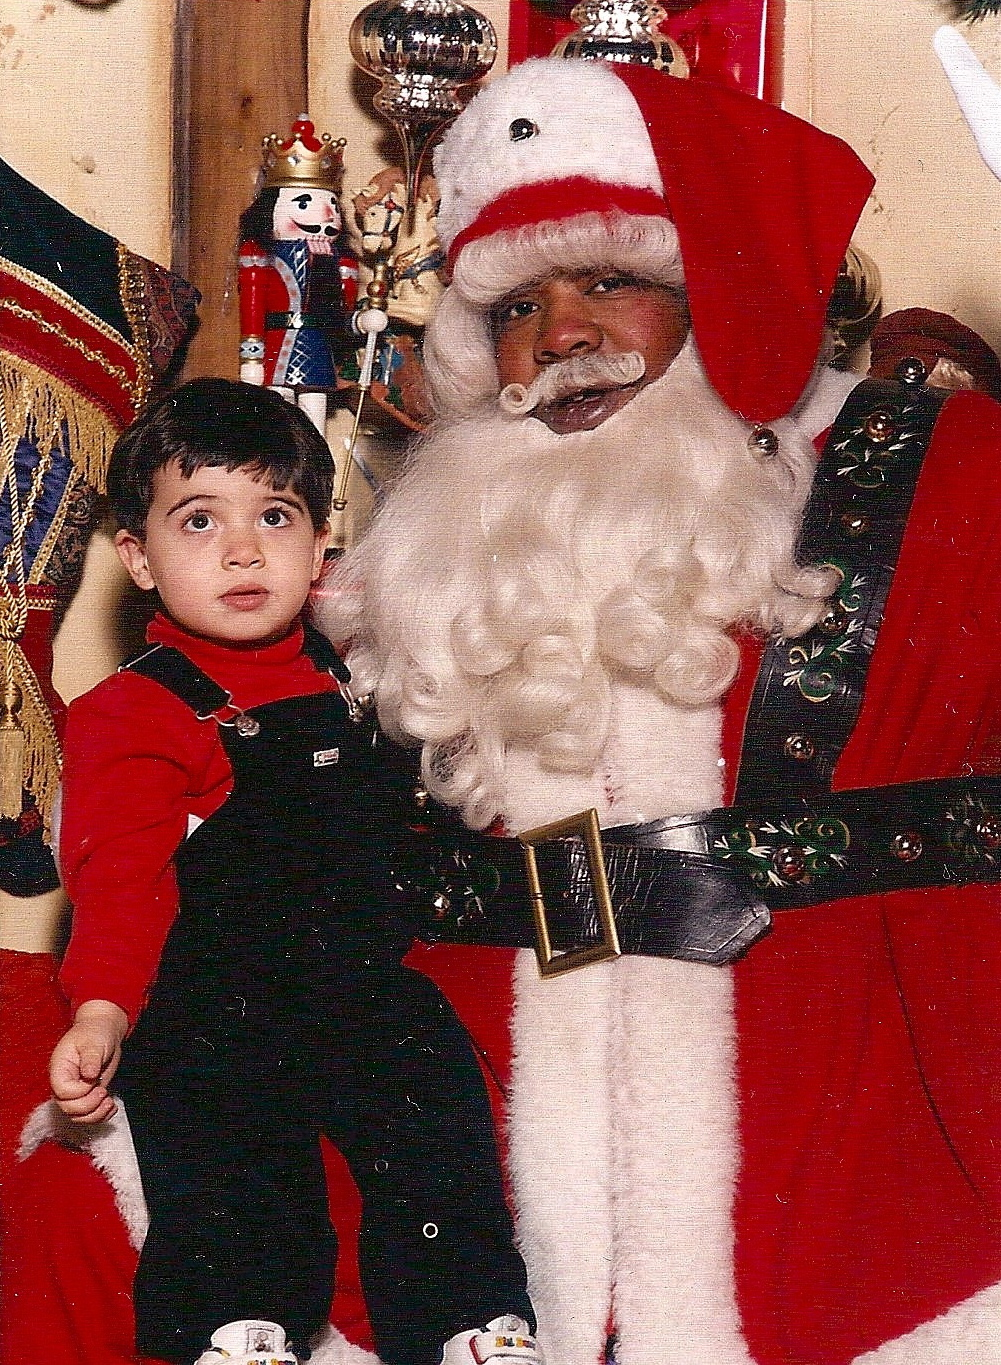 The One and Only True Santa